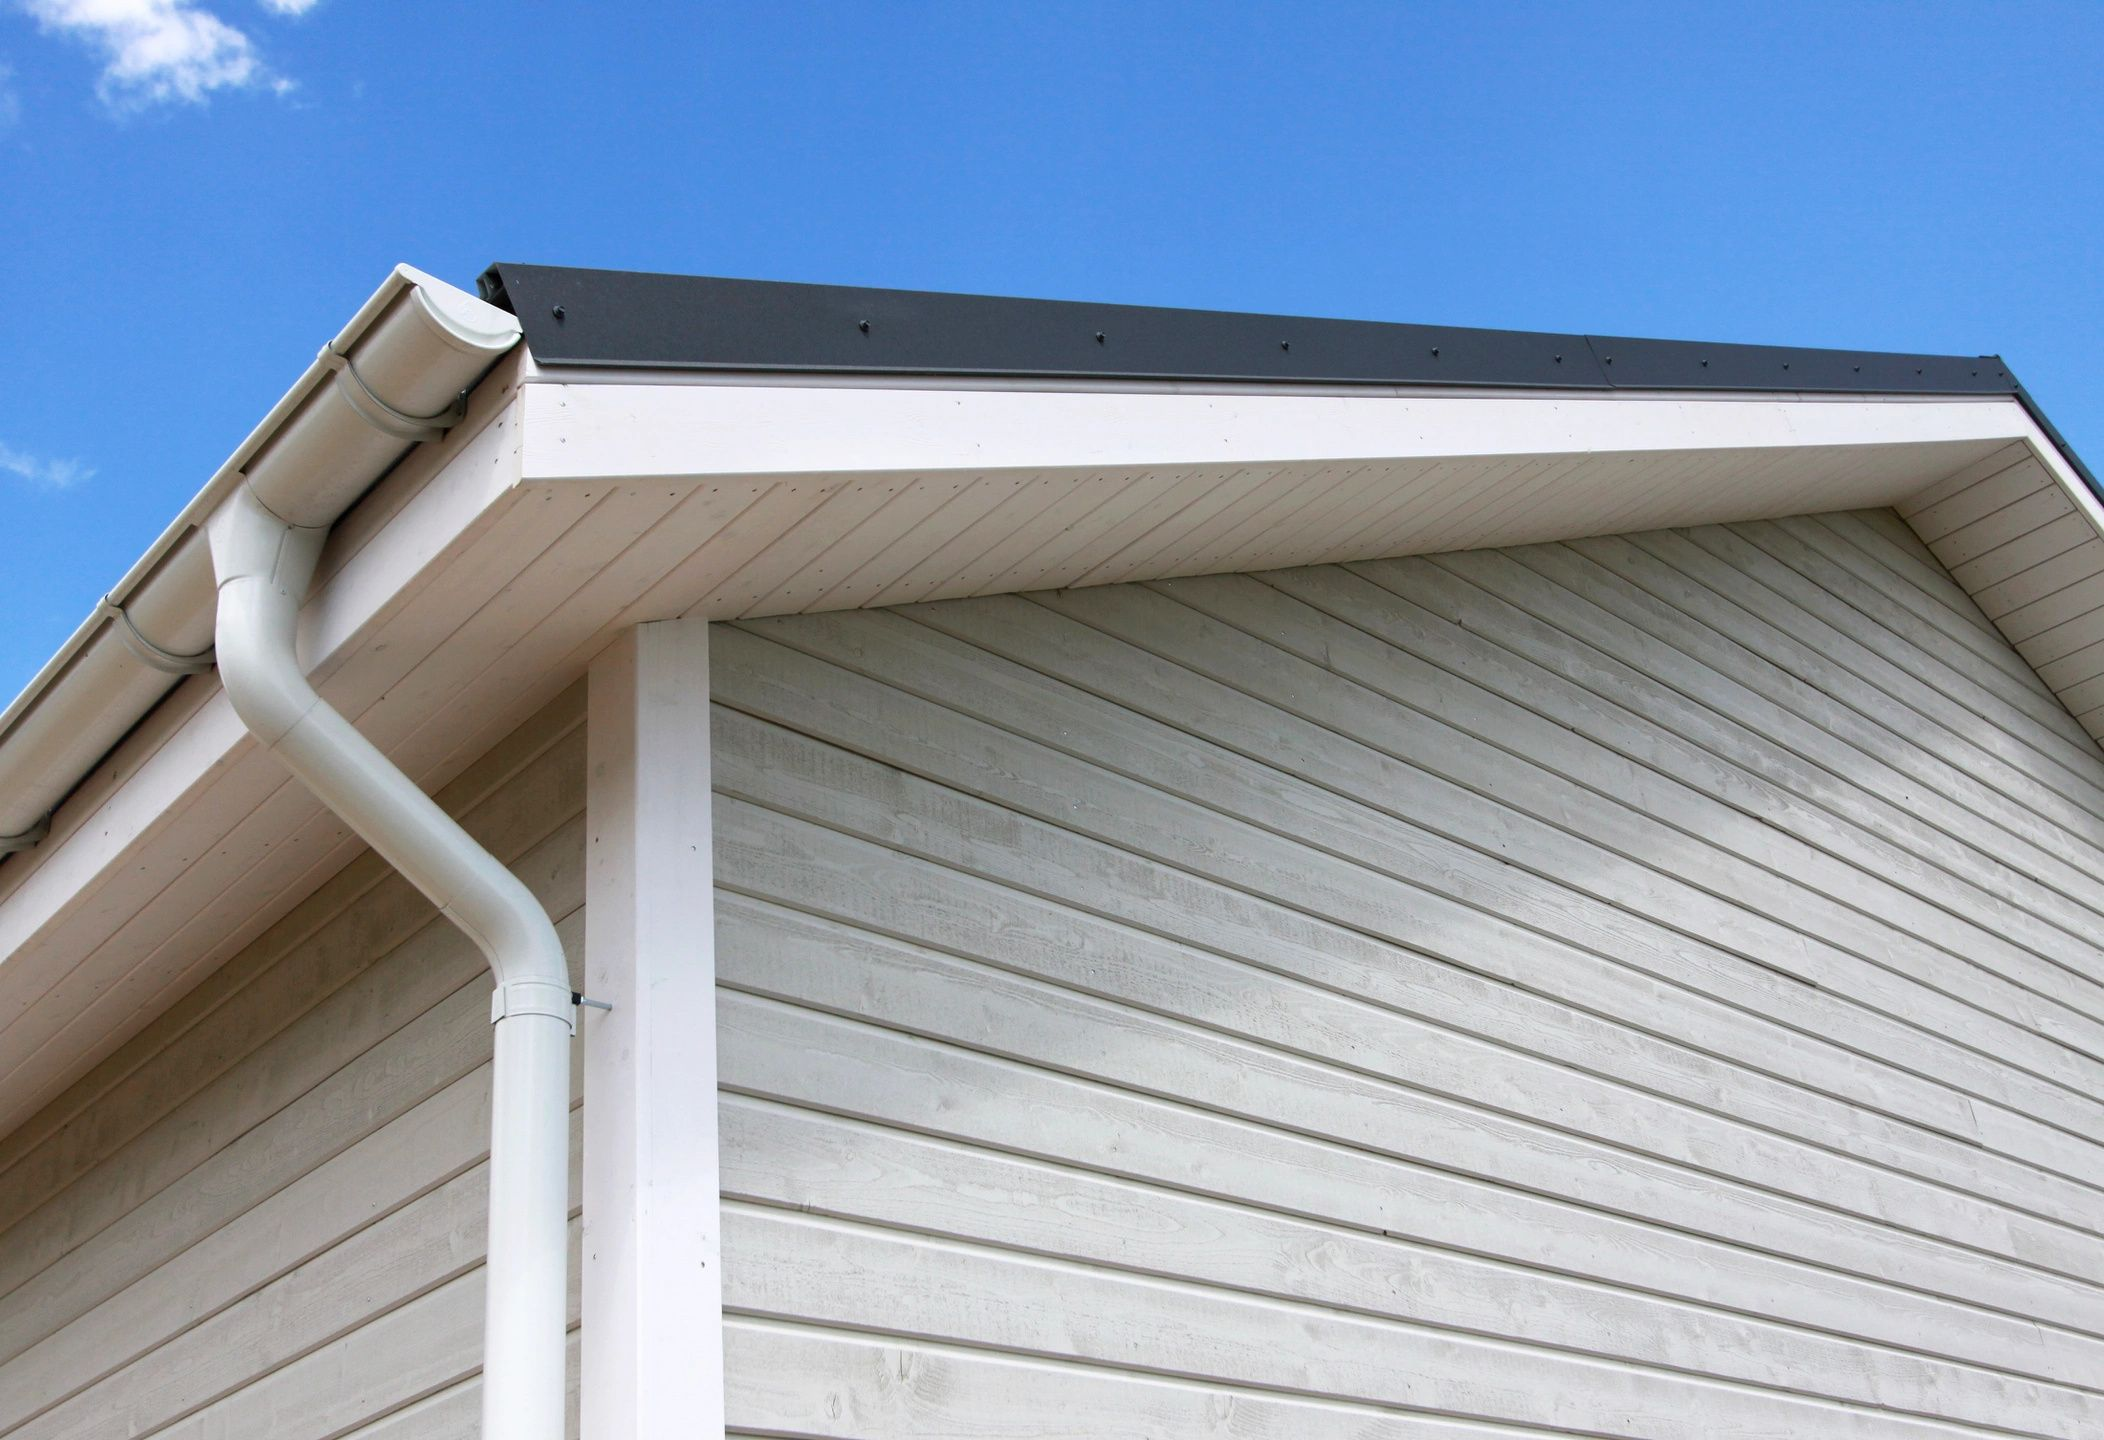 New Eavestroughs or Gutters Cost